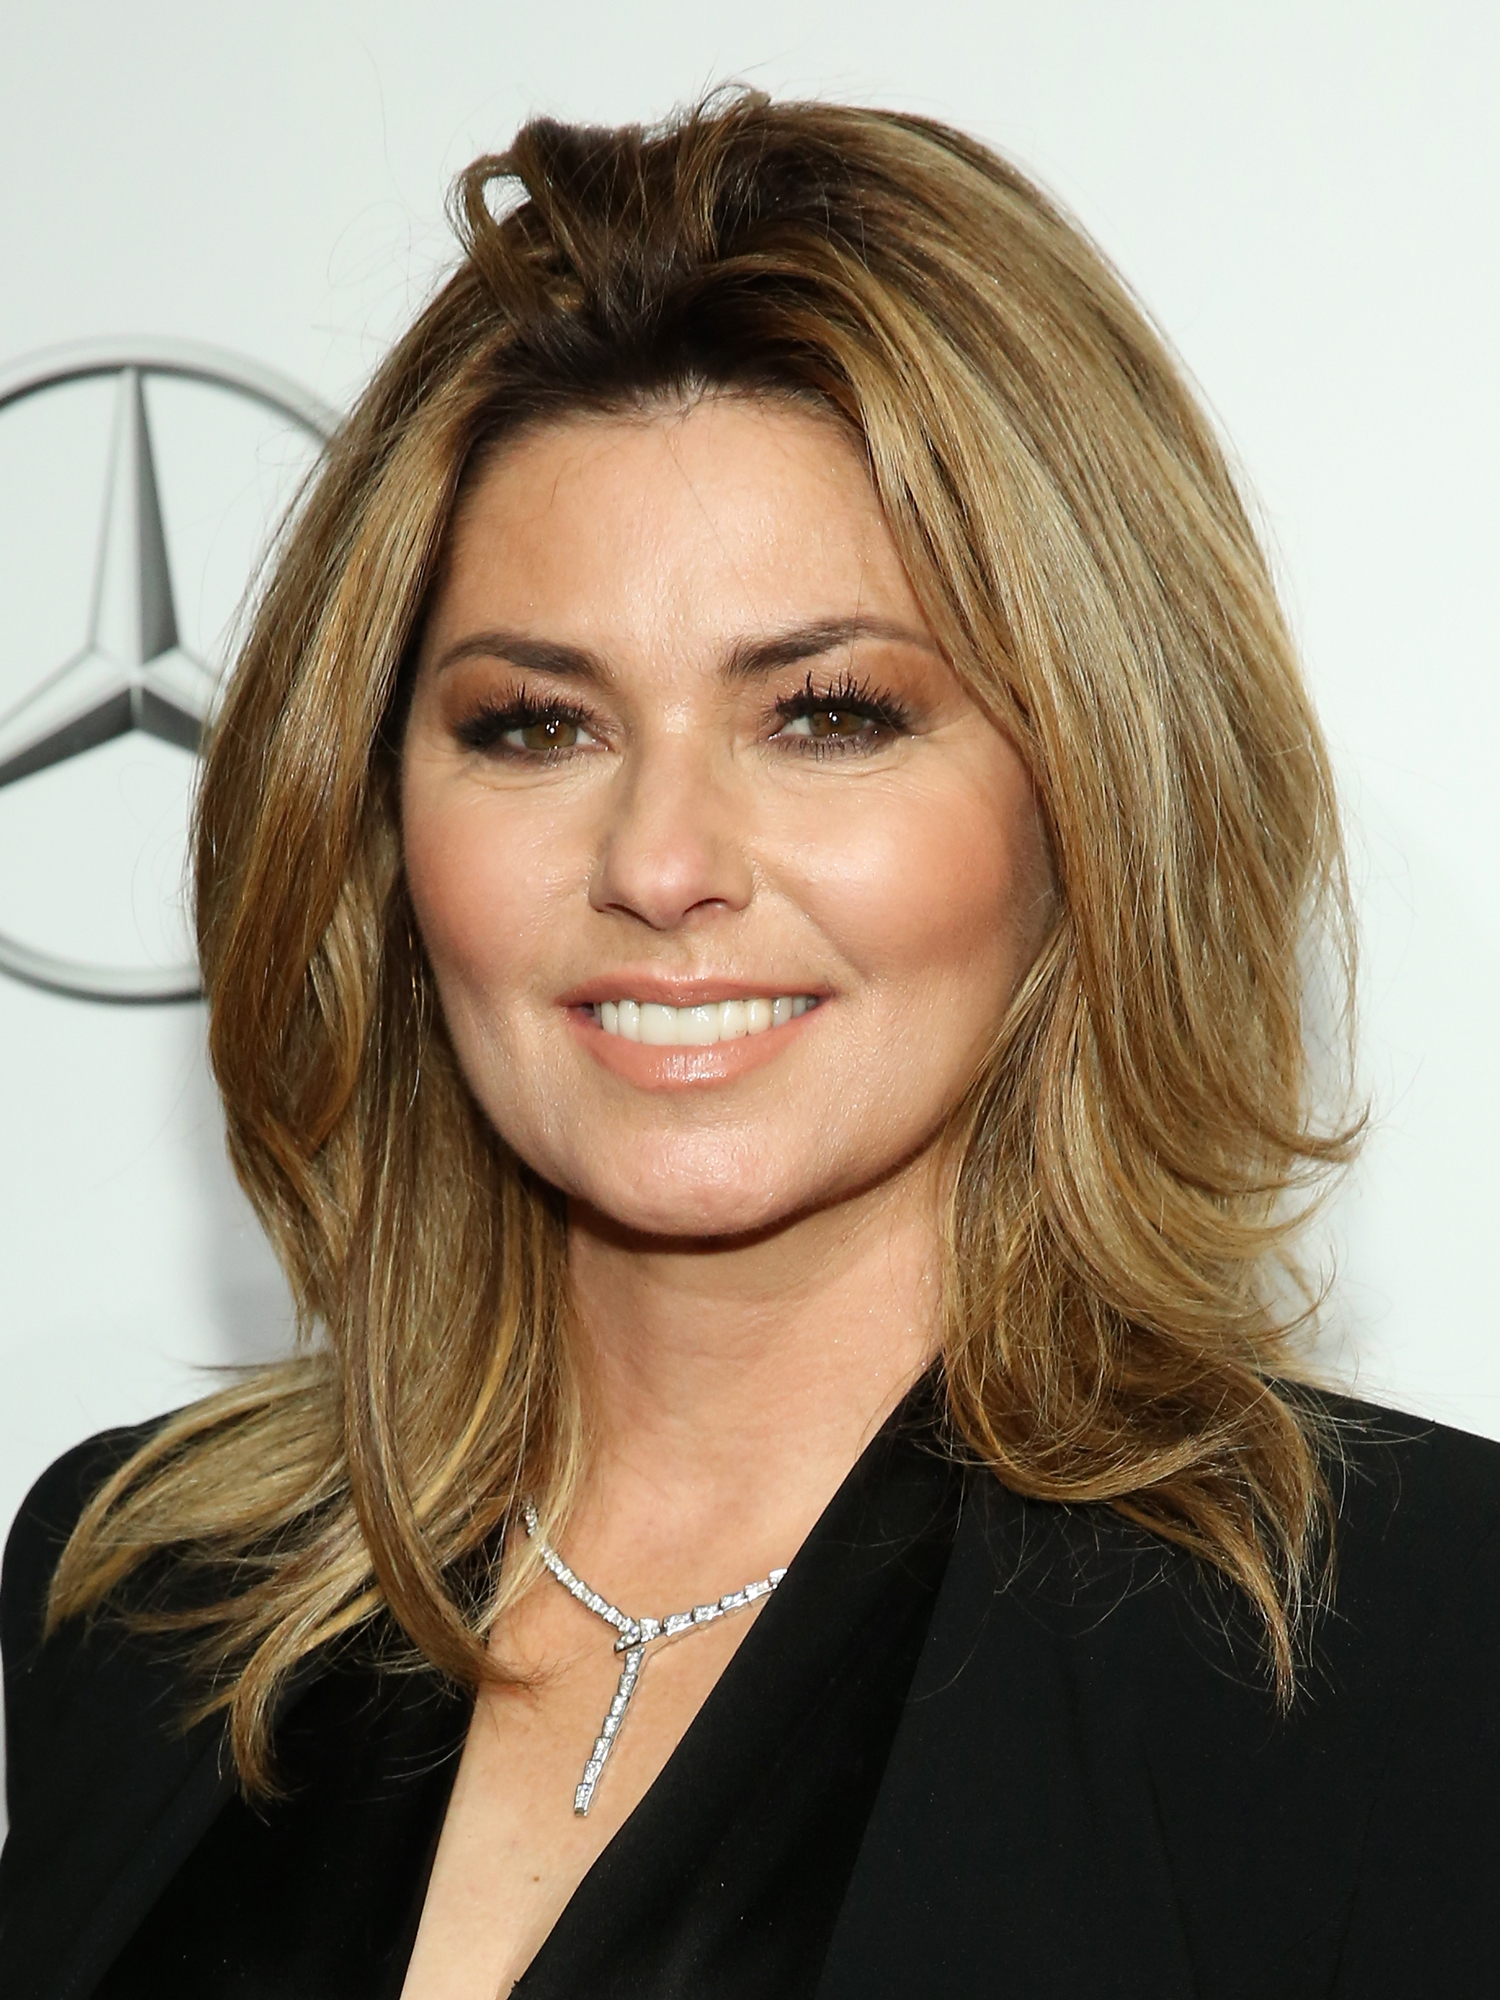 Shania Twain S Beauty Transformaion Instyle Com